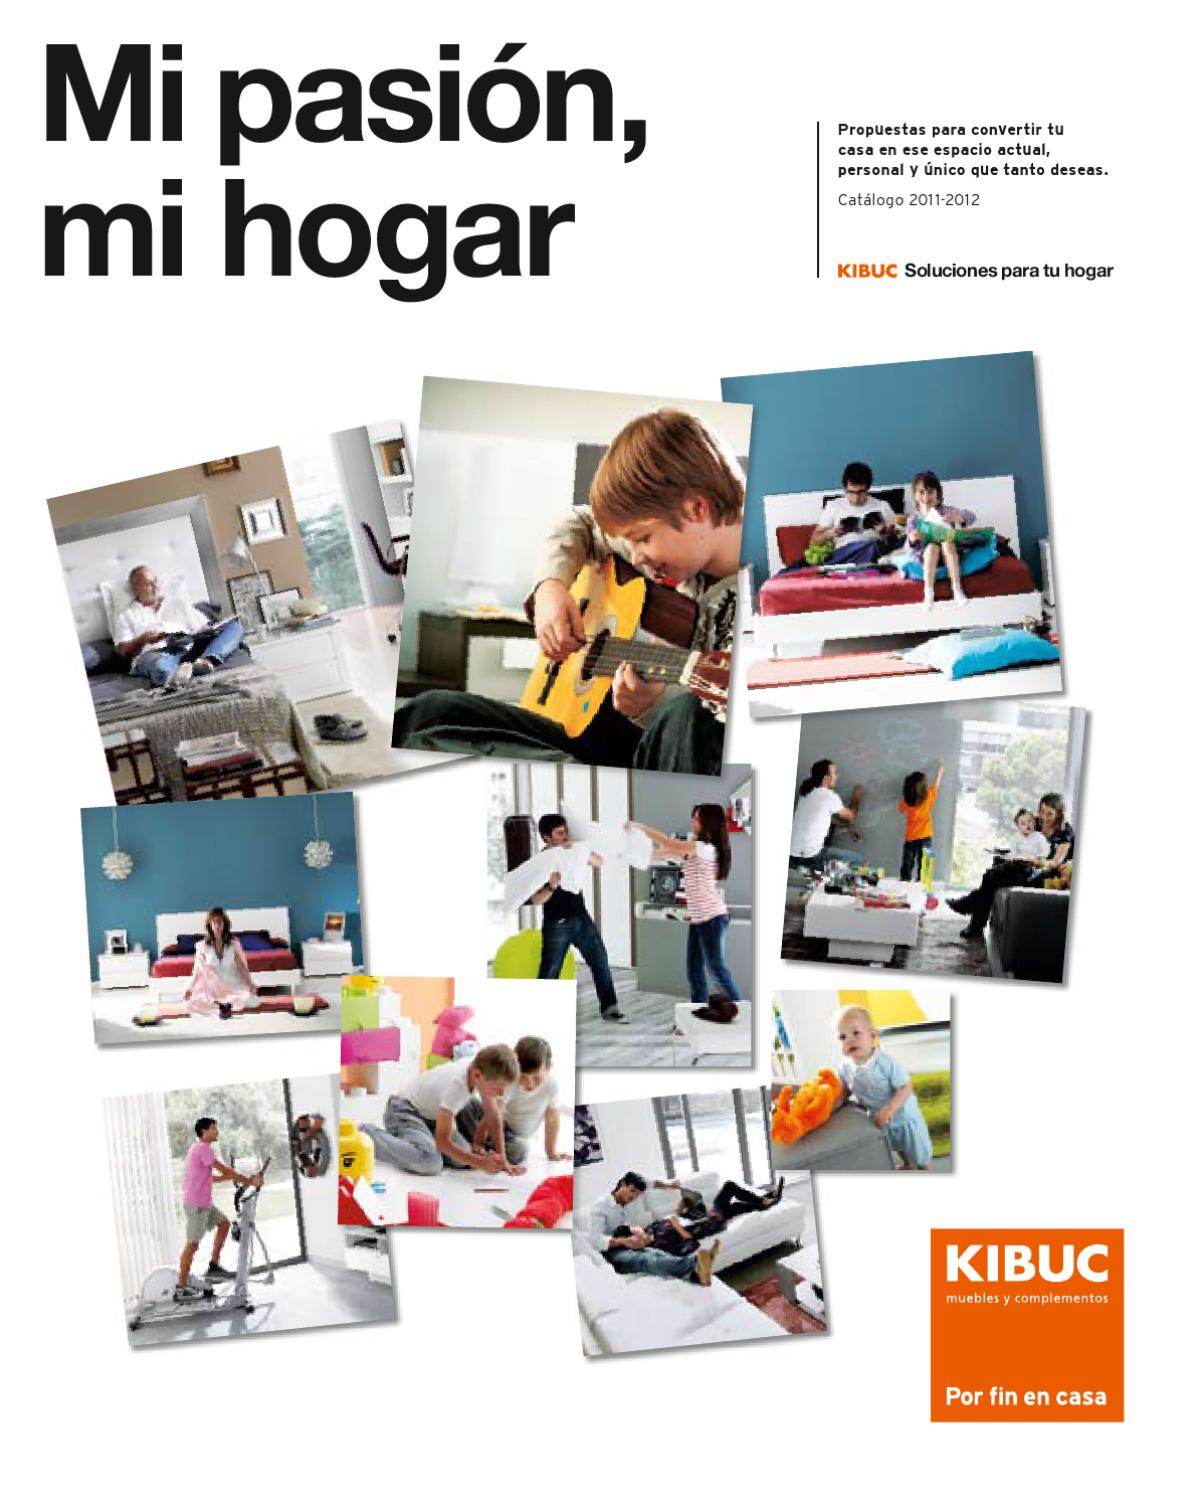 Catálogo general Kibuc 2011-2012 by Kibuc - issuu